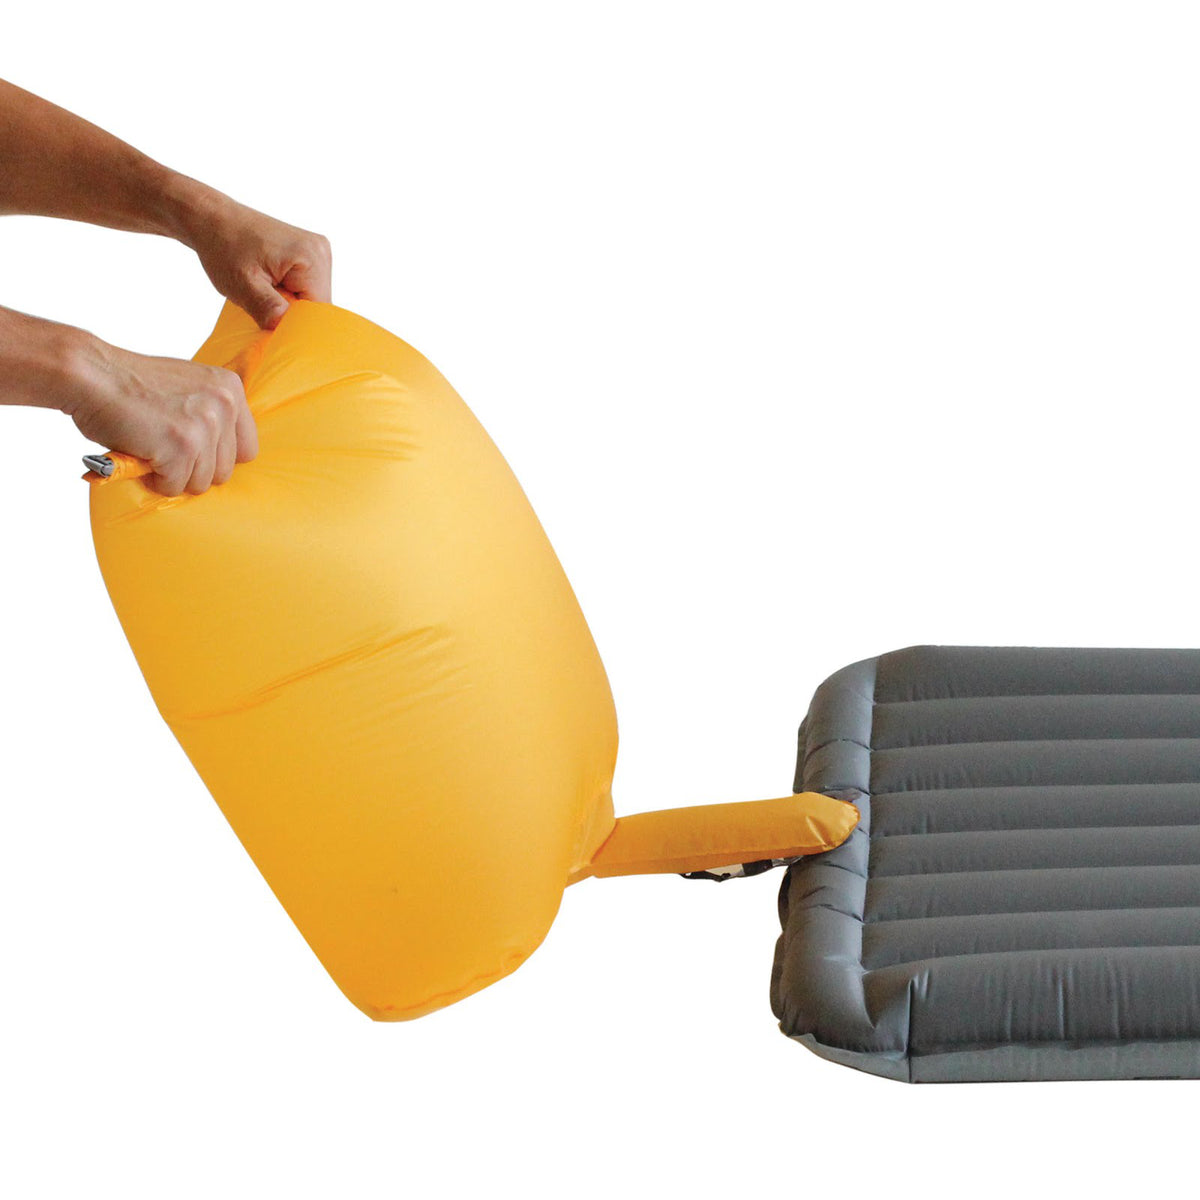 Exped DownMat UL Winter M sleeping mat shown being inflated with yellow pump sack